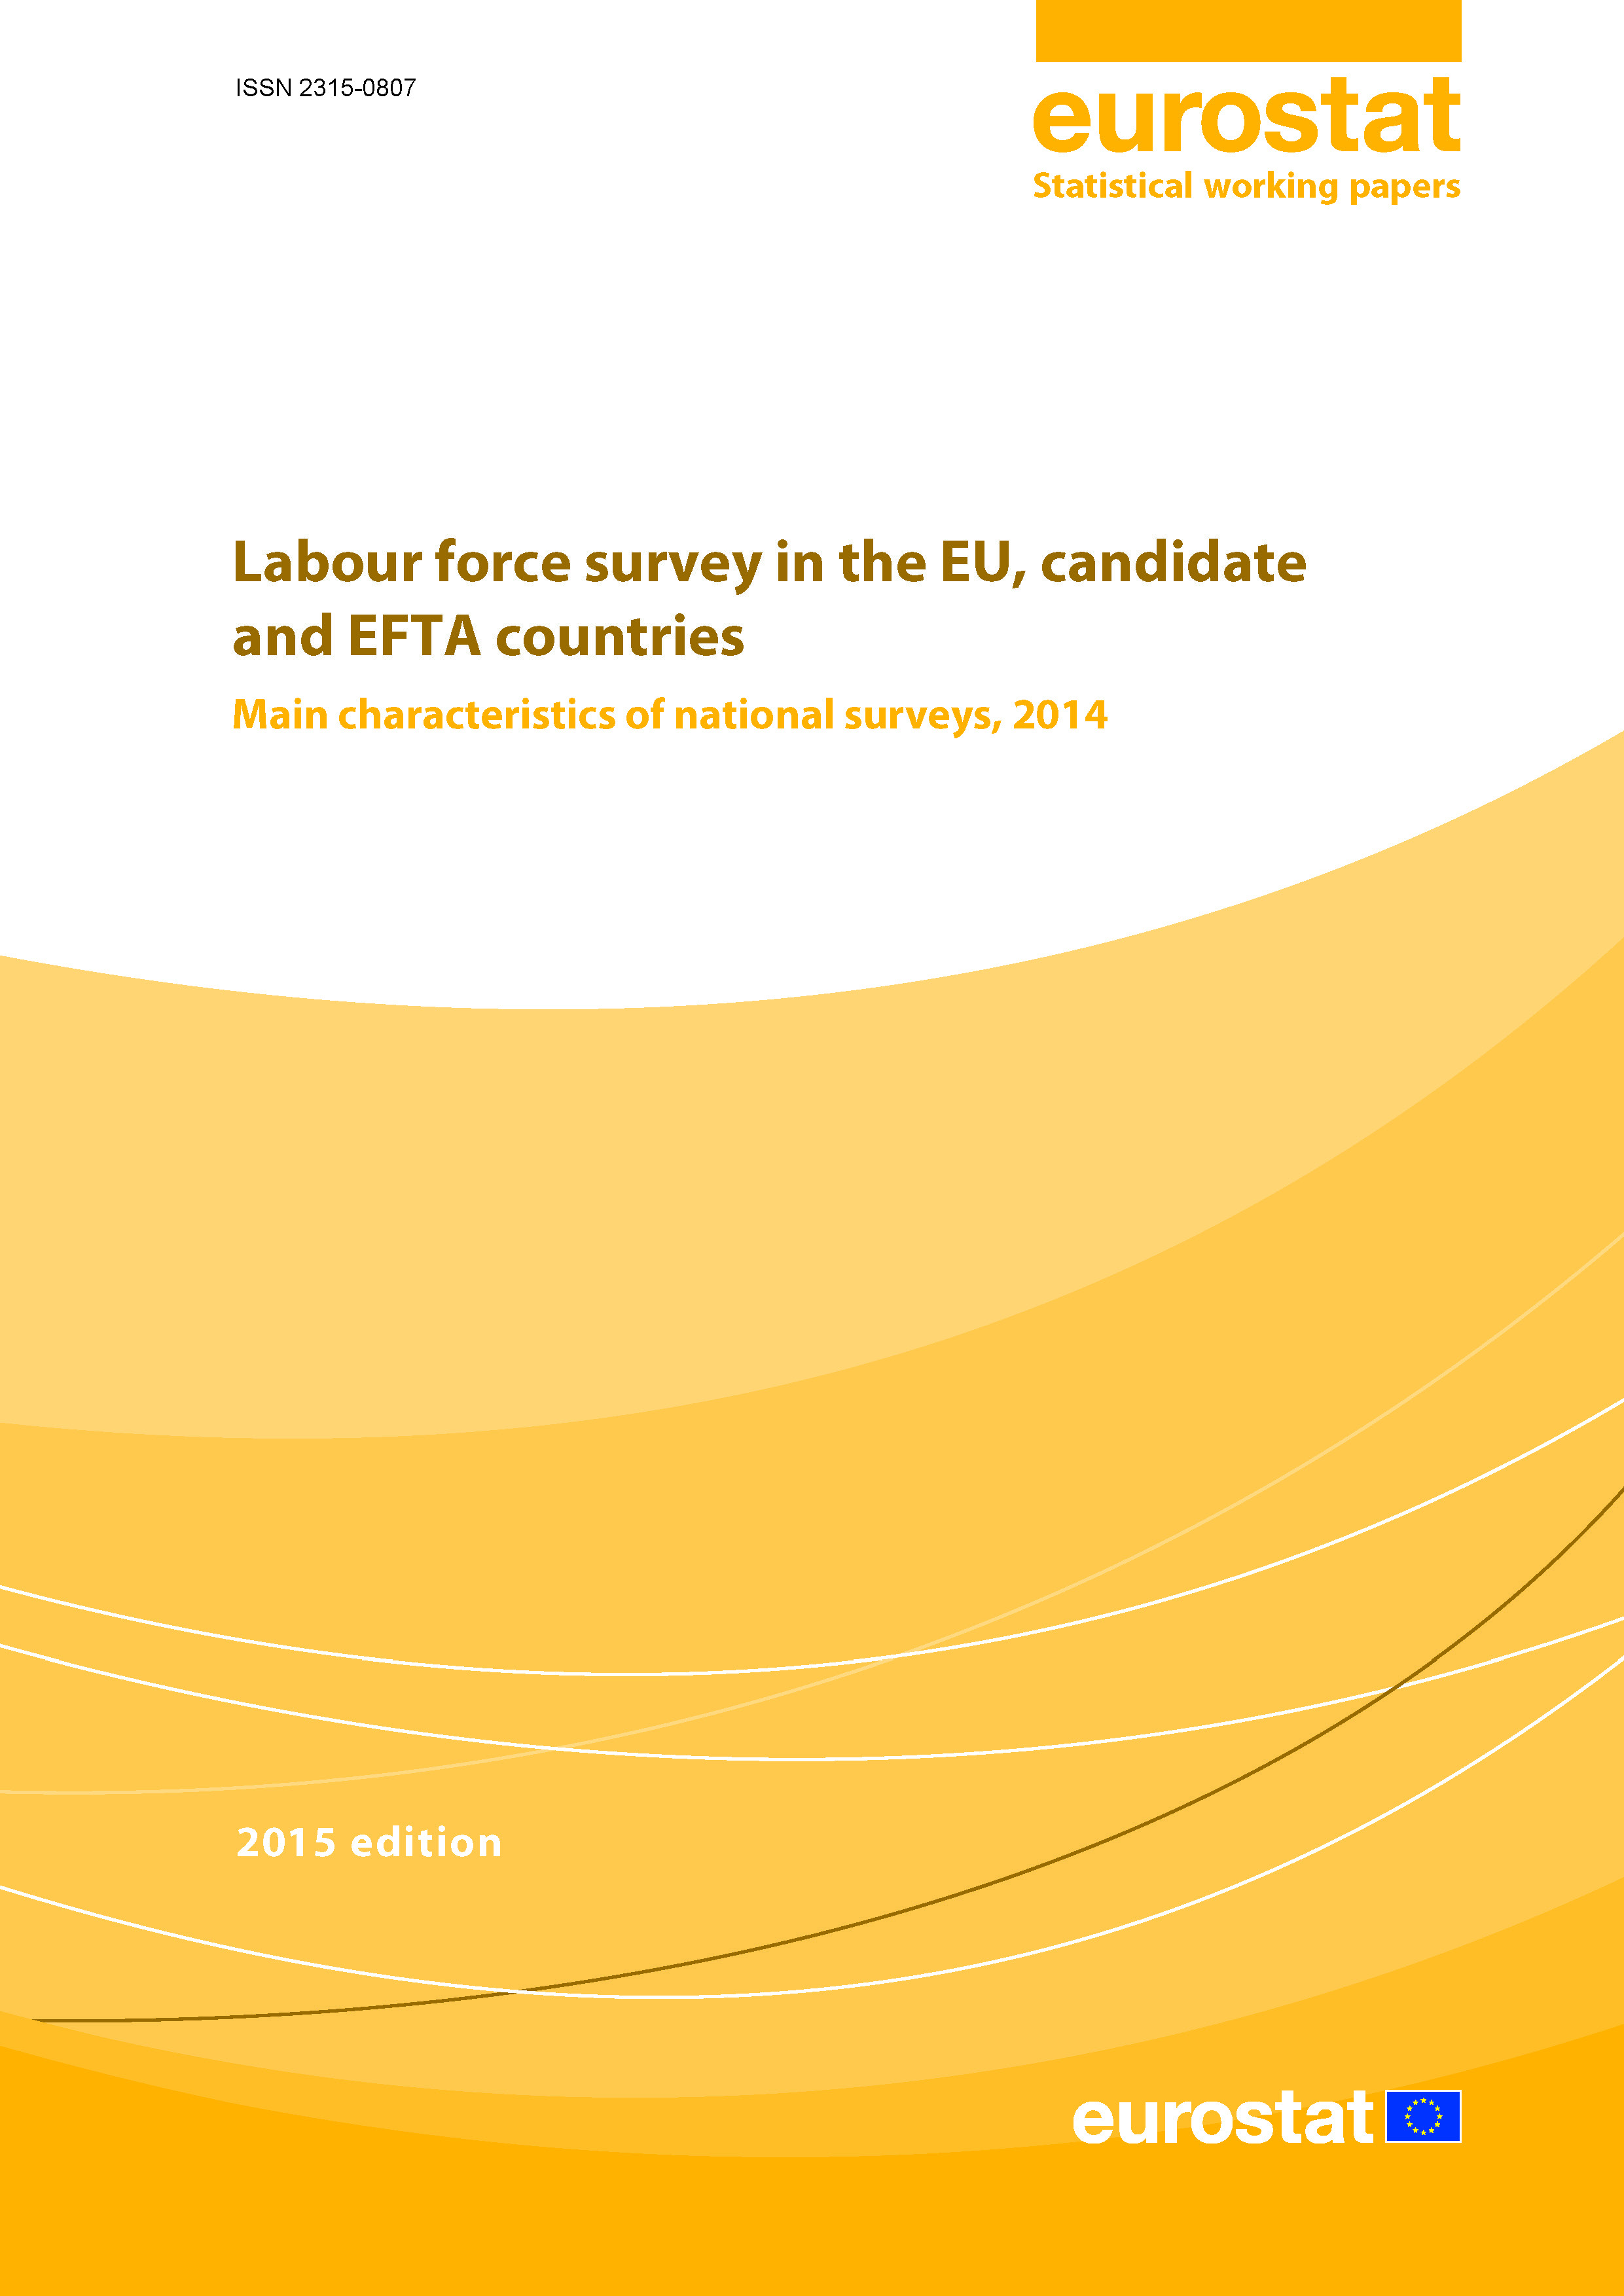 Labour force survey in the EU, candidate and EFTA countries — Main characteristics of national surveys, 2014